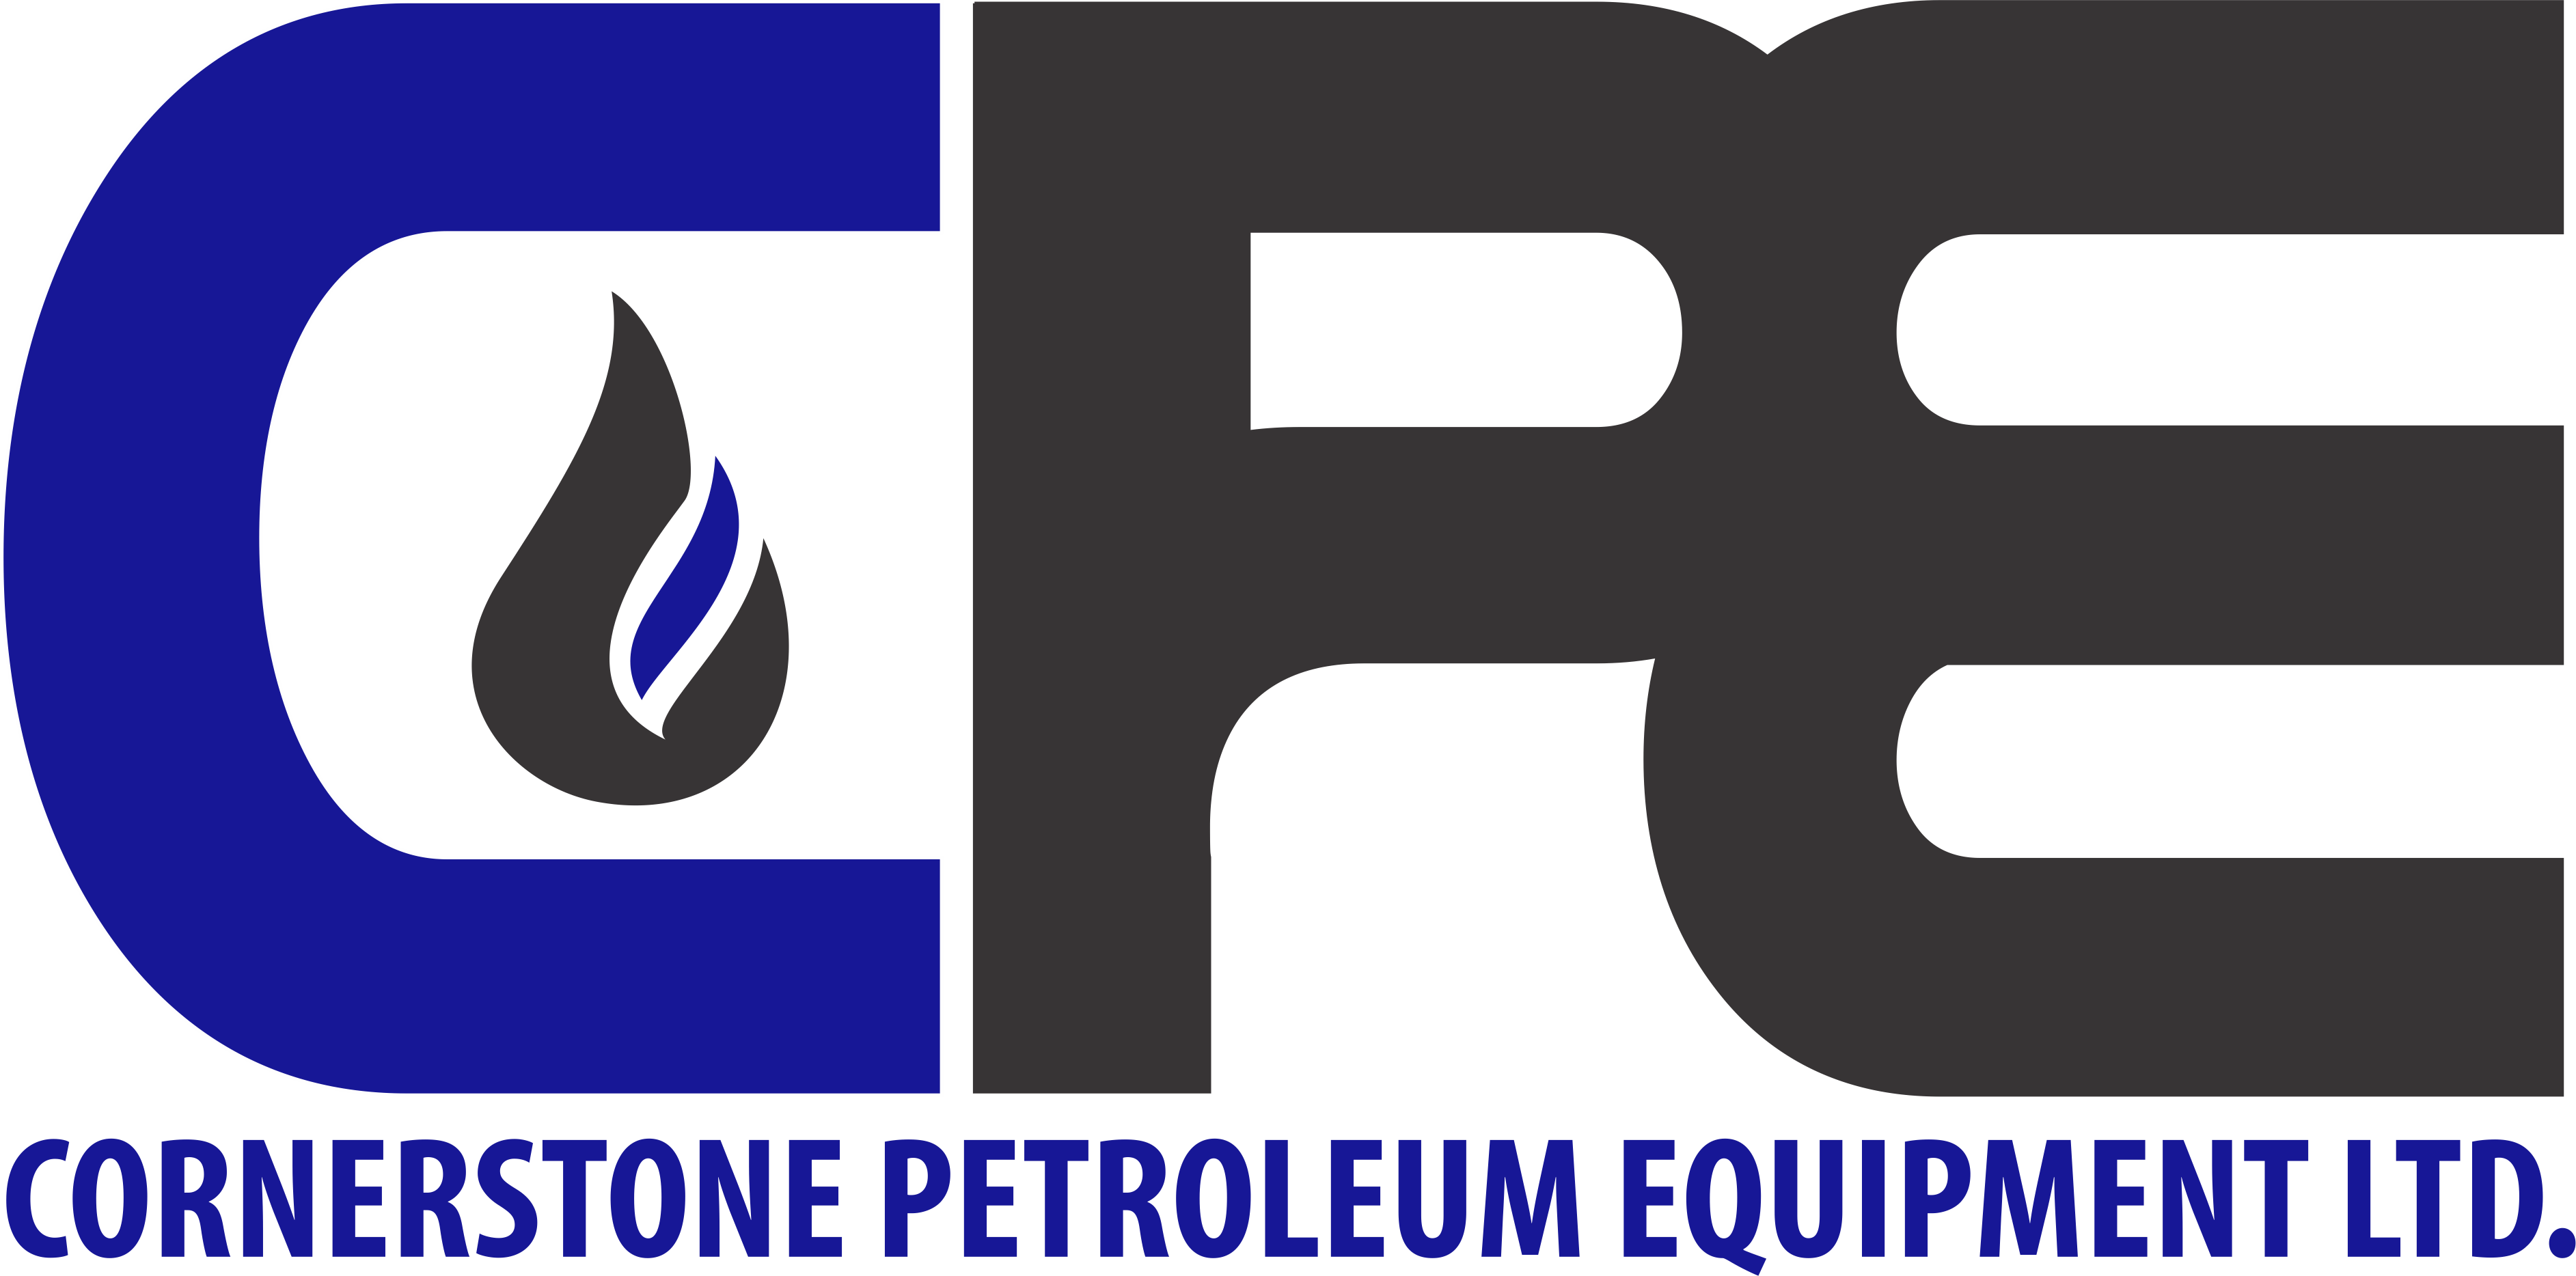 Cornerstone Petroleum Equipment Ltd.